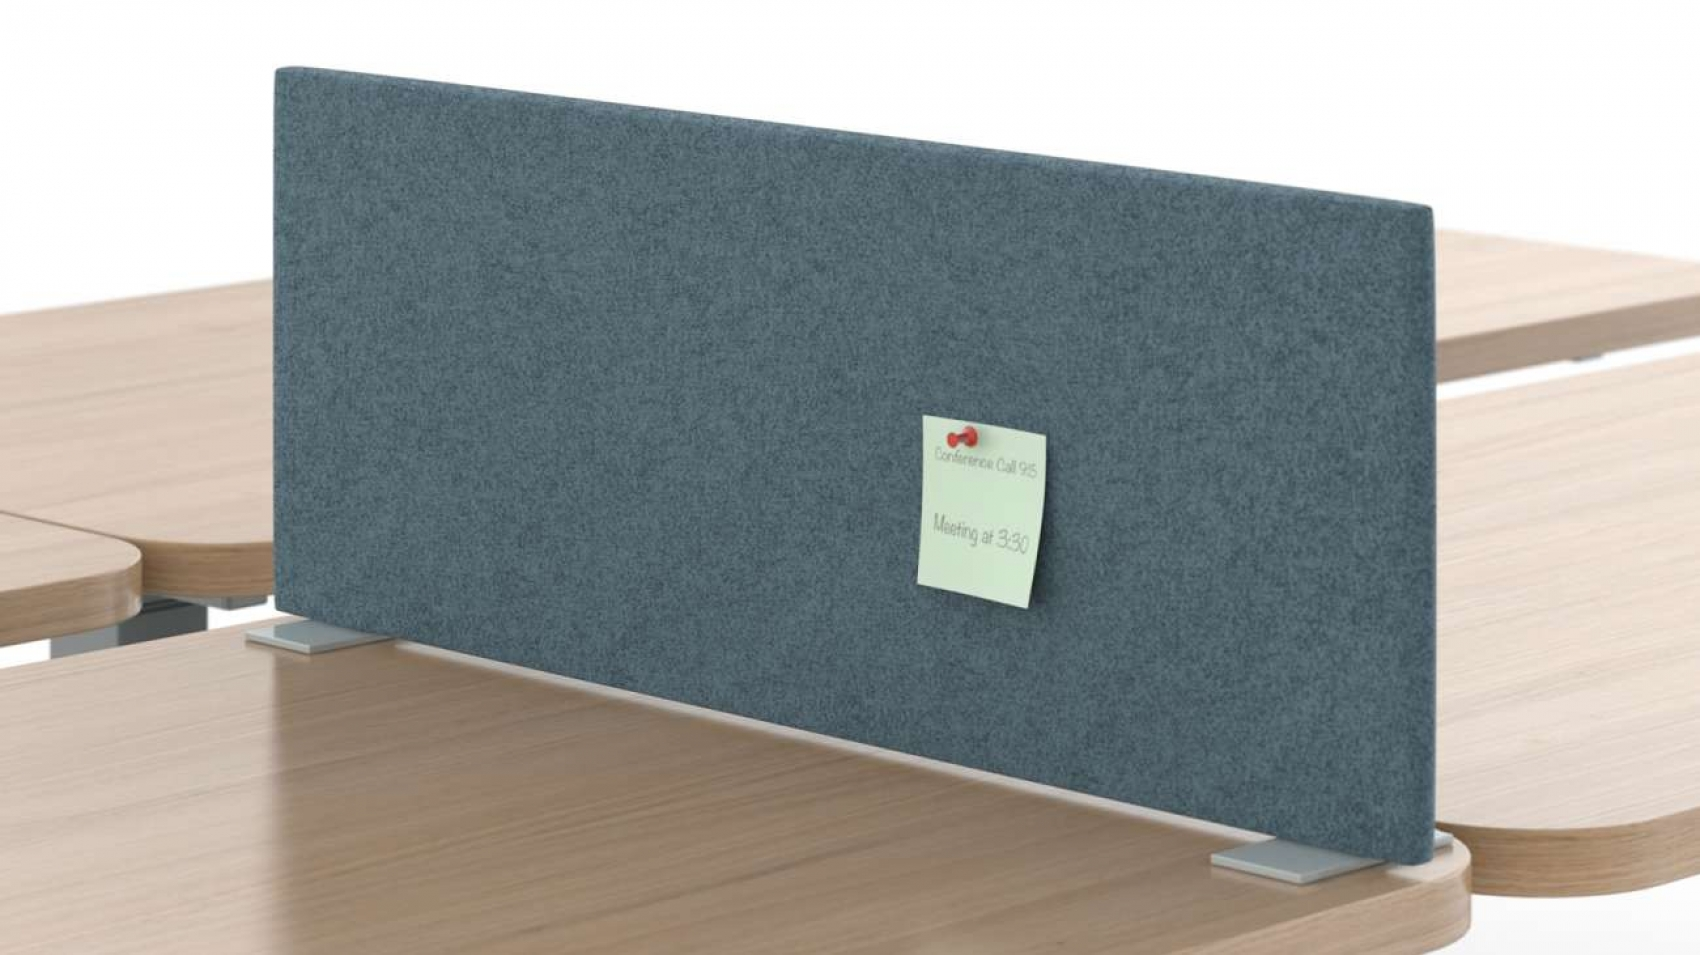 Sit-on worksurface privacy screen